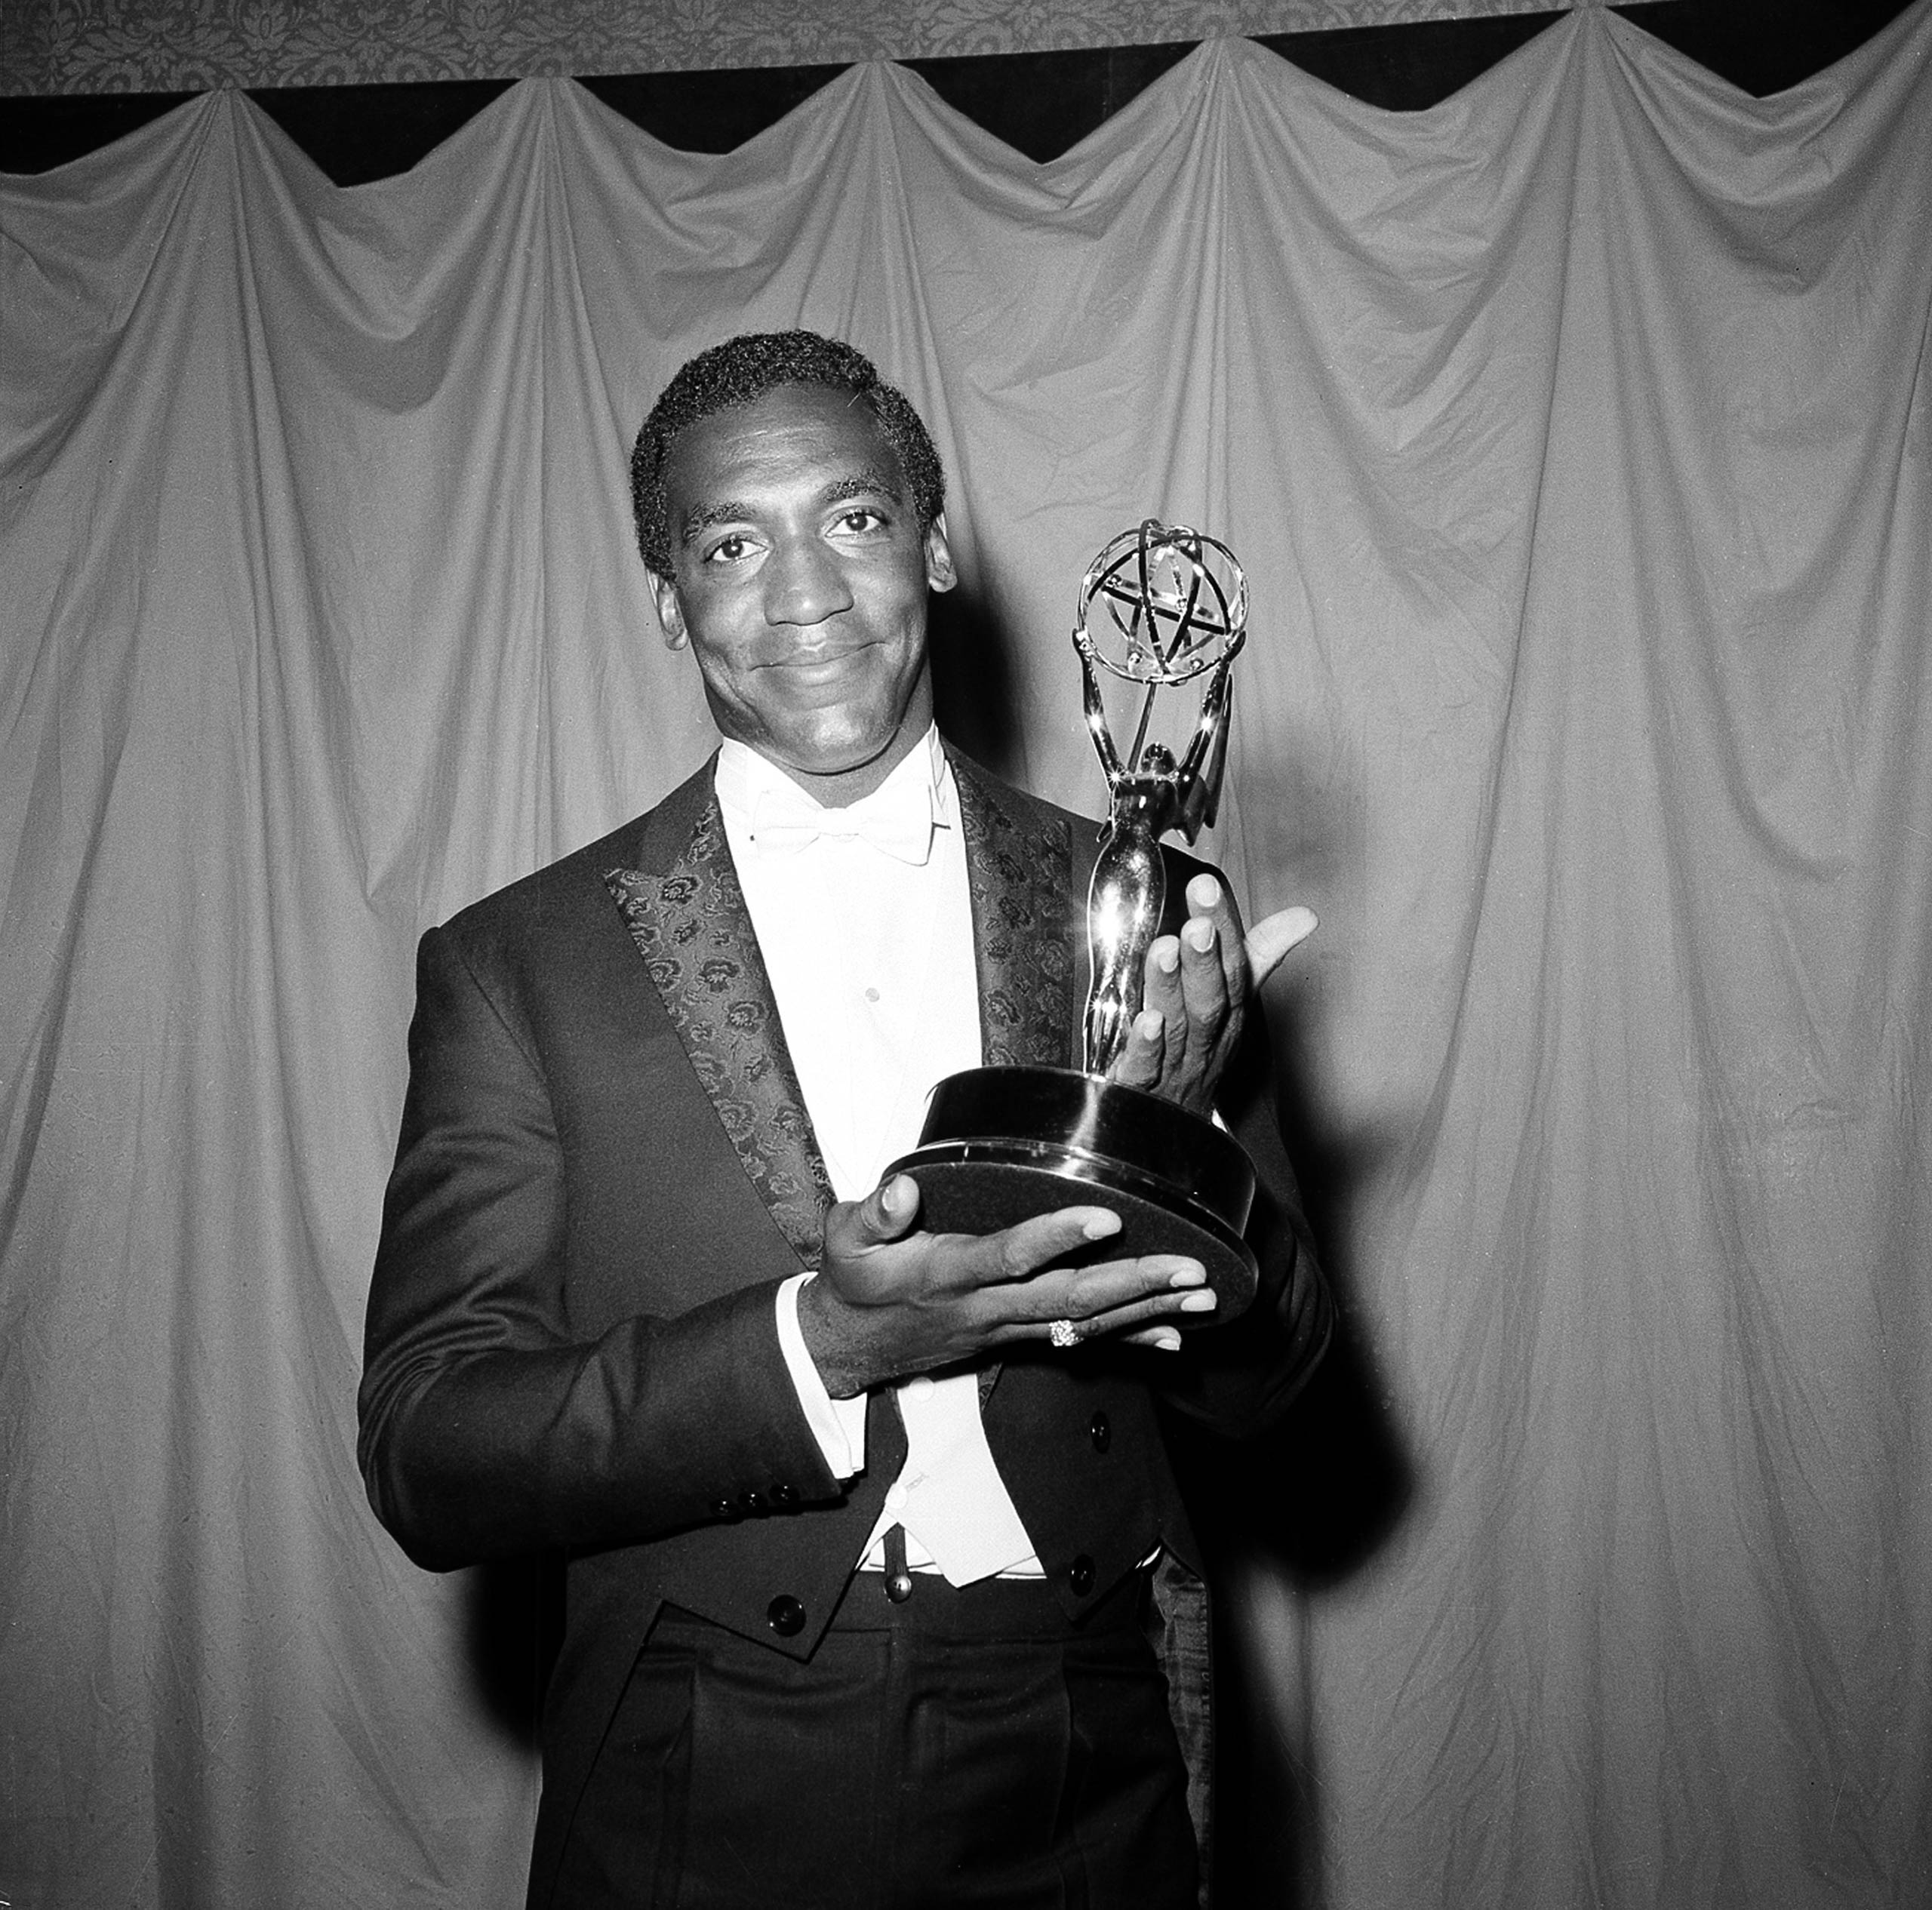 Bill Cosby poses with his Emmy for his role in <i>I Spy</i> at the Primetime Emmy Awards in New York City in 1966.